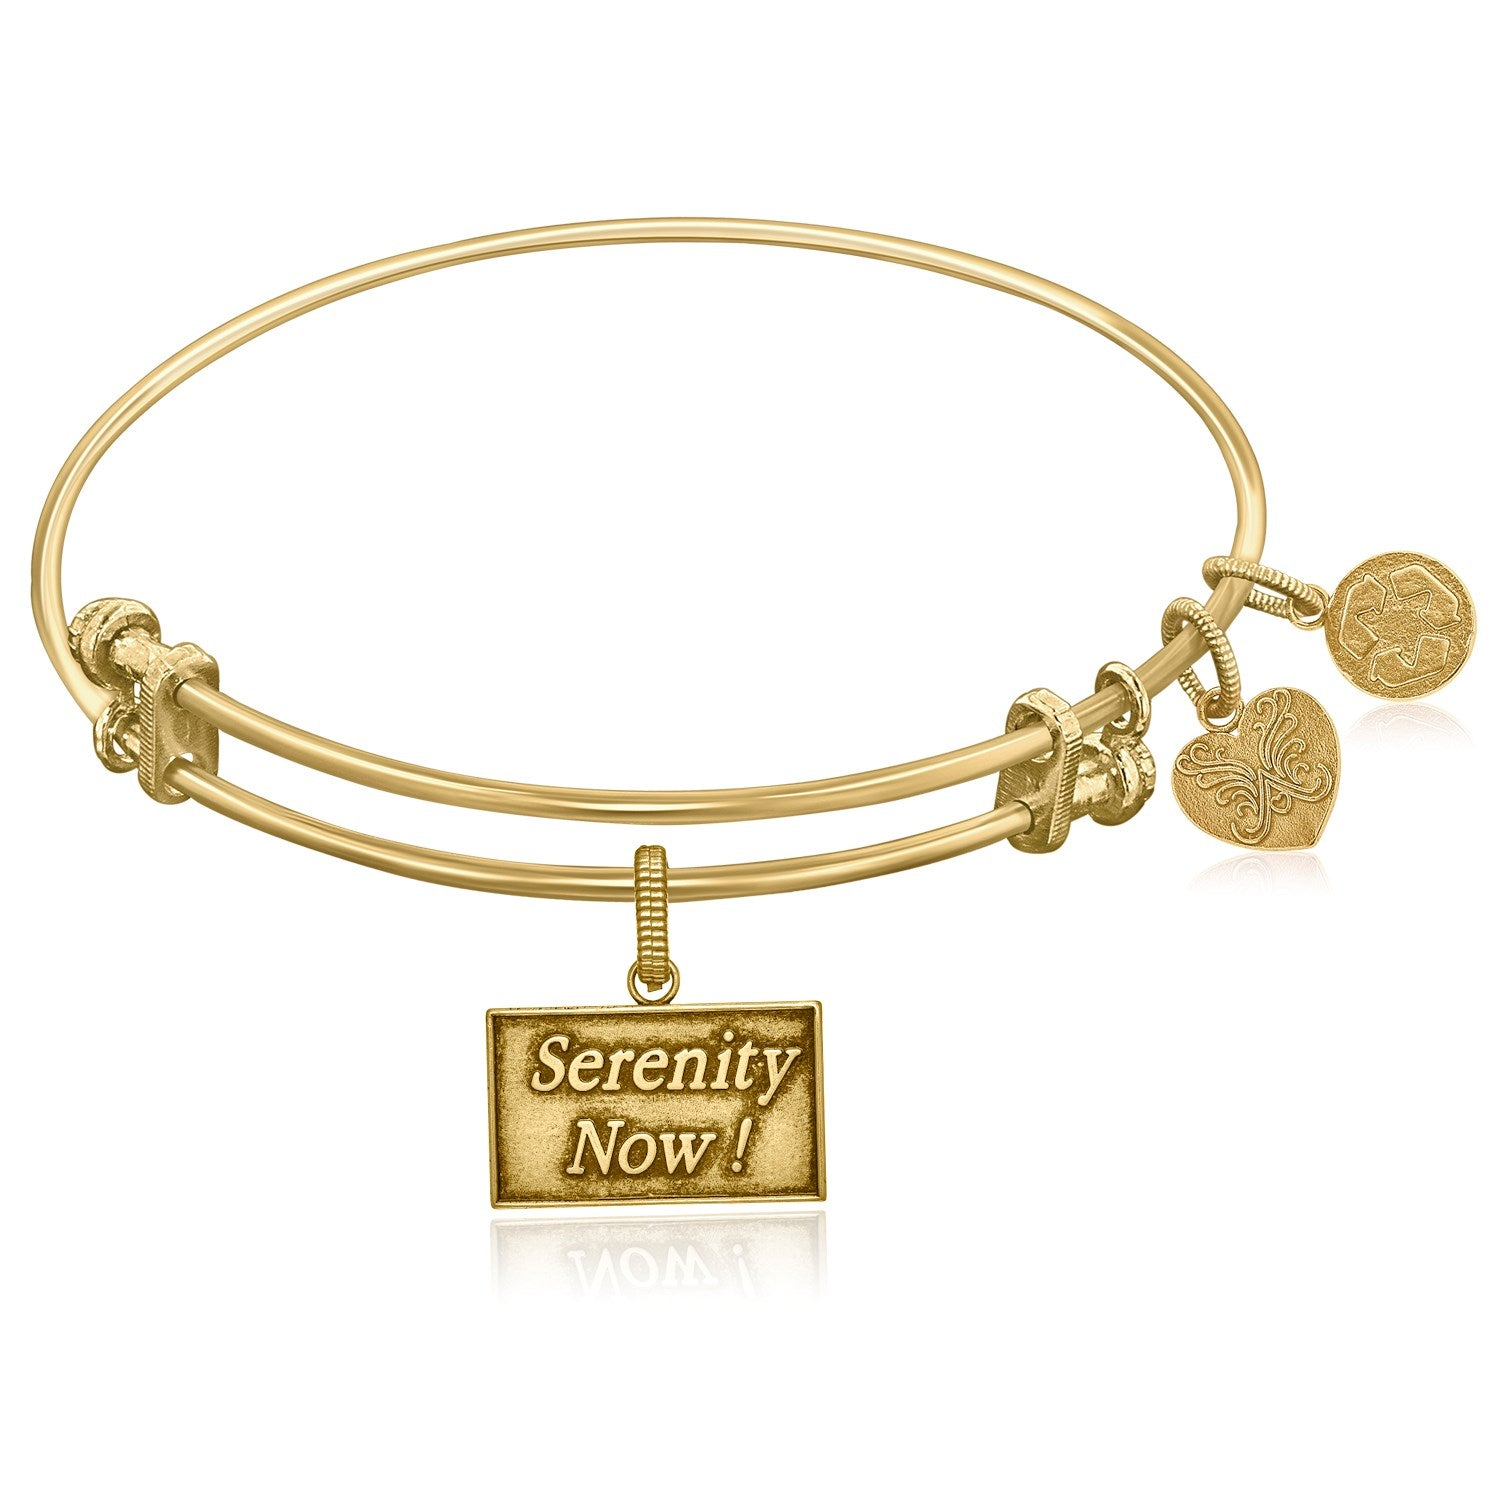 Expandable Yellow Tone Brass Bangle with Seinfeld Serenity Now! Symbol